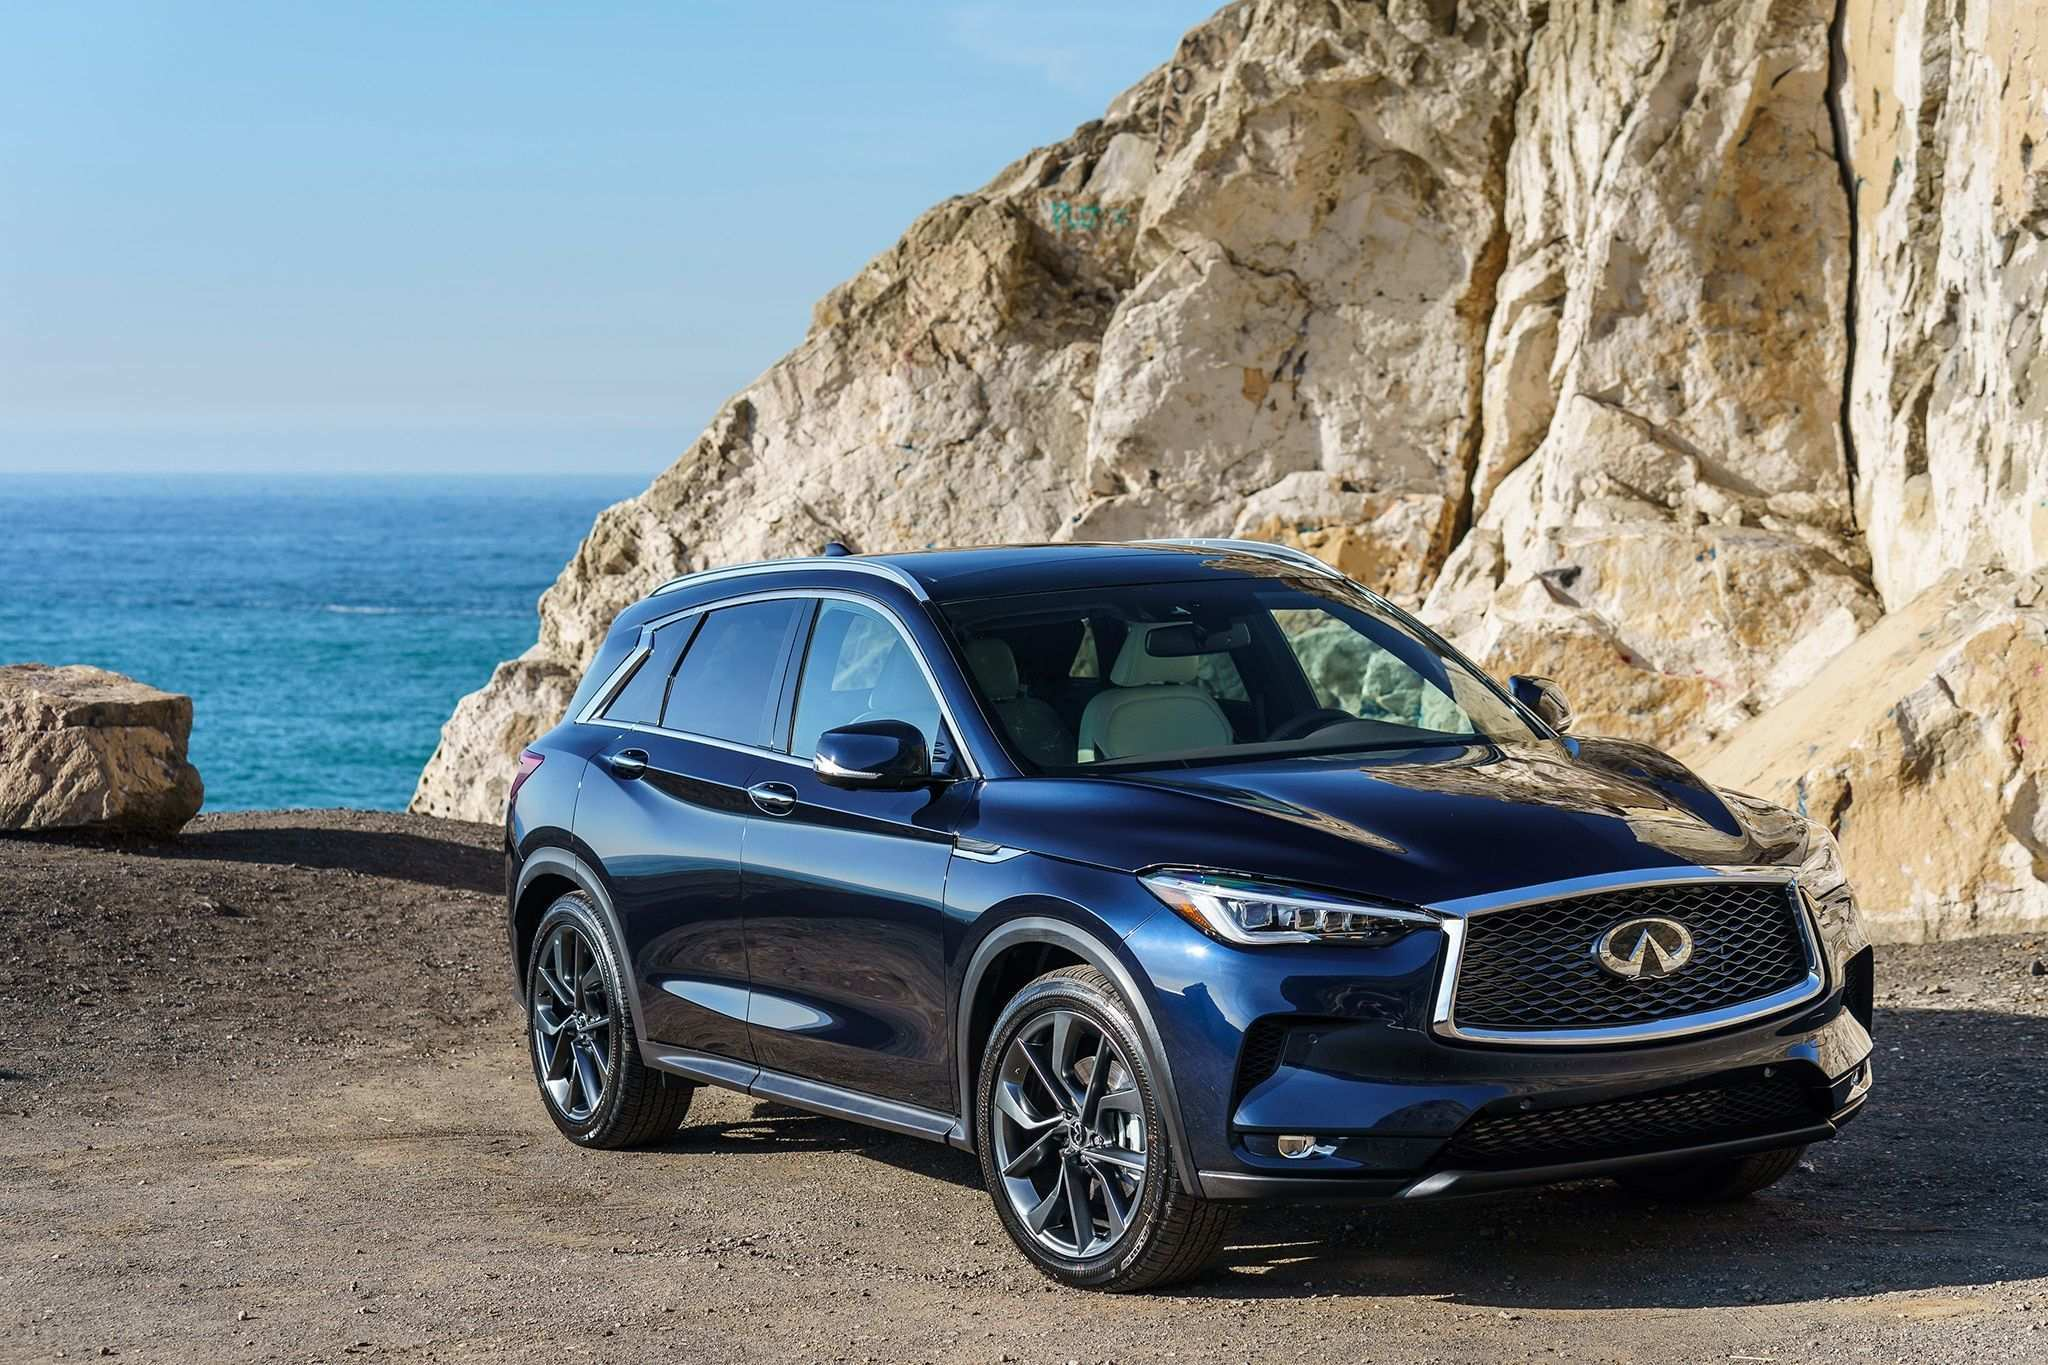 69 The Best 2020 Infiniti QX50 Picture